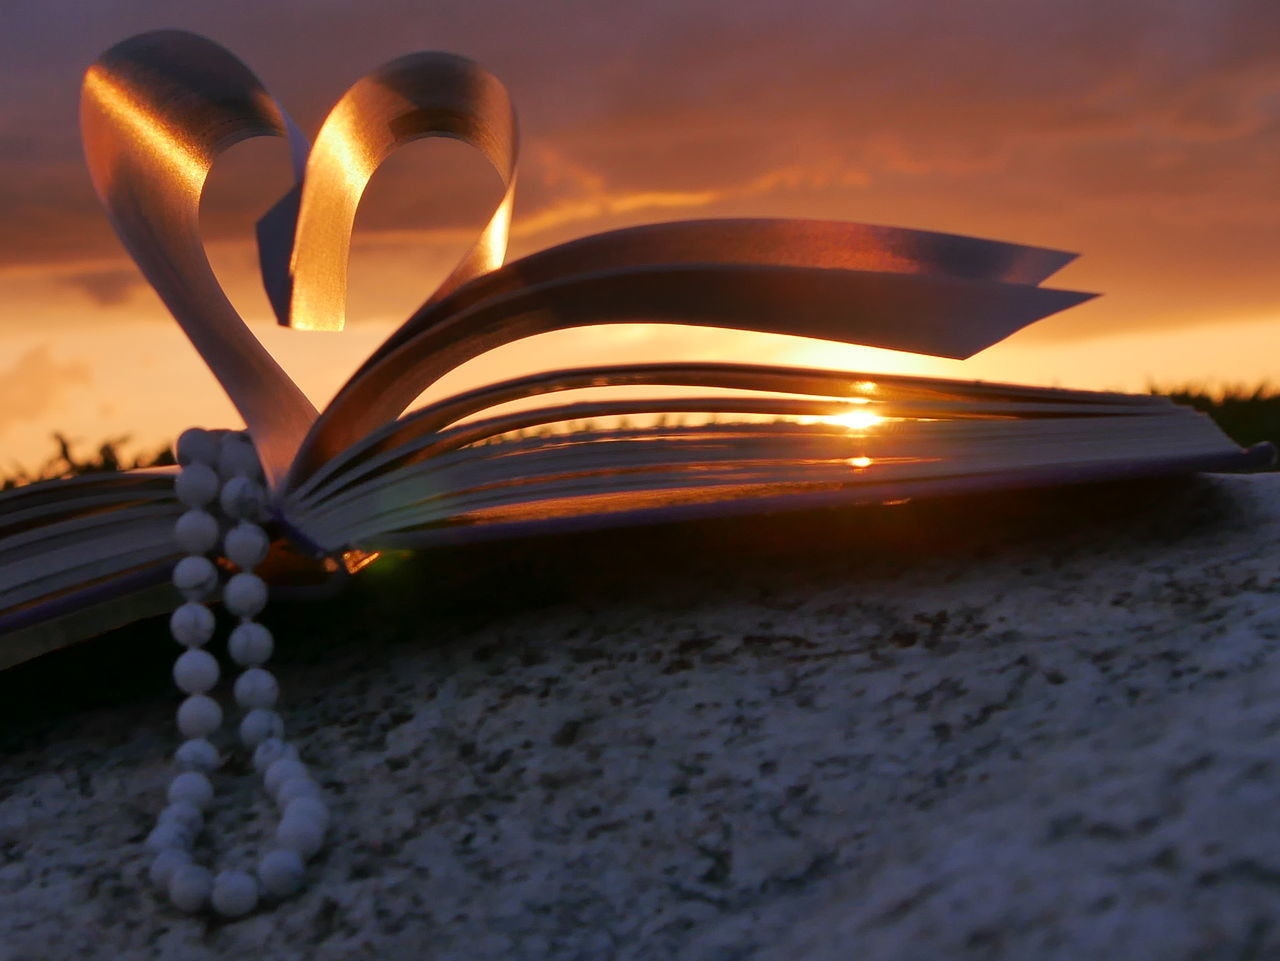 sunset, education, page, book, heart shape, rock - object, wisdom, cloud - sky, outdoors, sky, nature, beauty in nature, no people, close-up